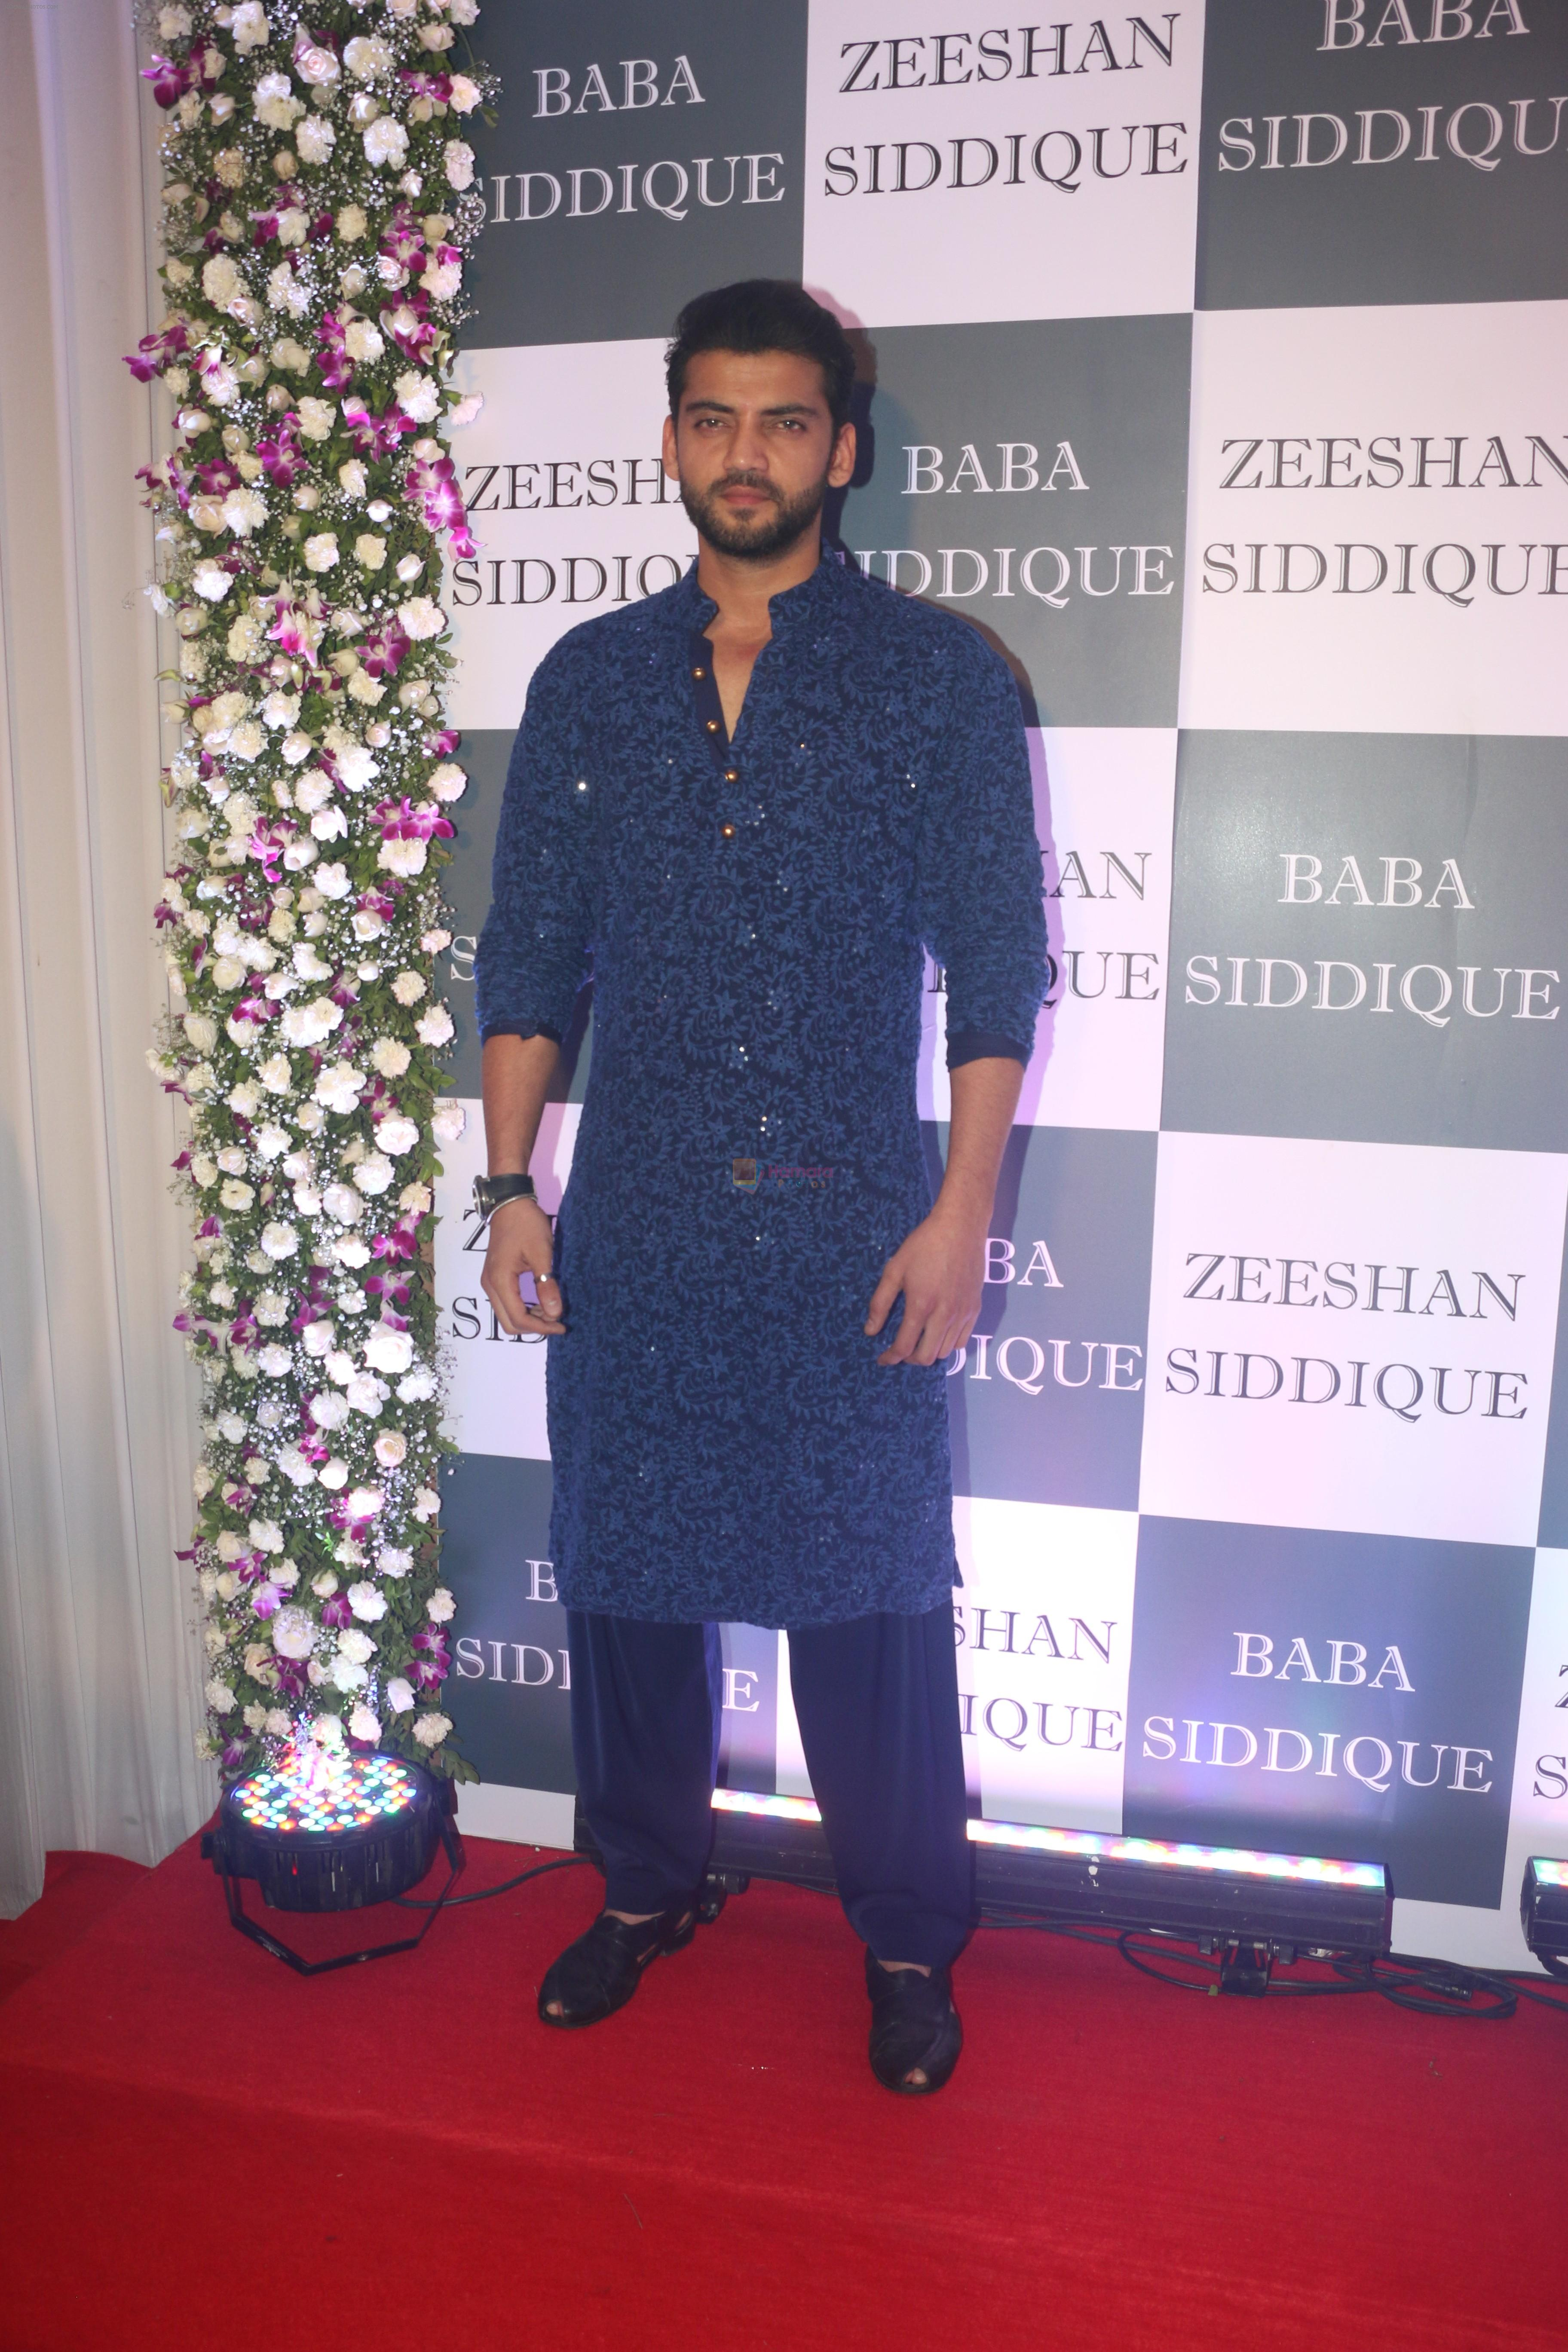 Zaheer Iqbal at Baba Siddiqui iftaar party in Taj Lands End bandra on 2nd June 2019